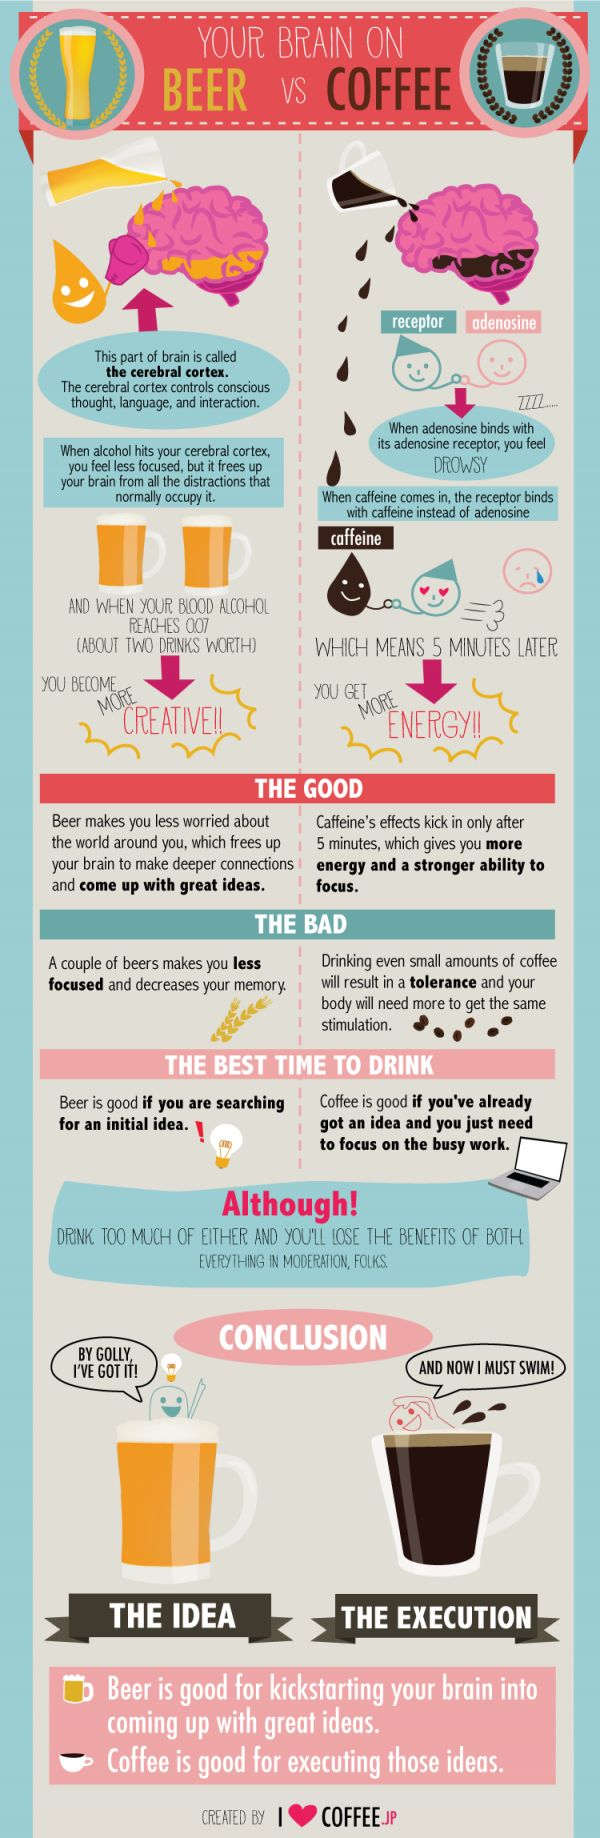 Your brain on beer vs. coffee [infographic] - Love!